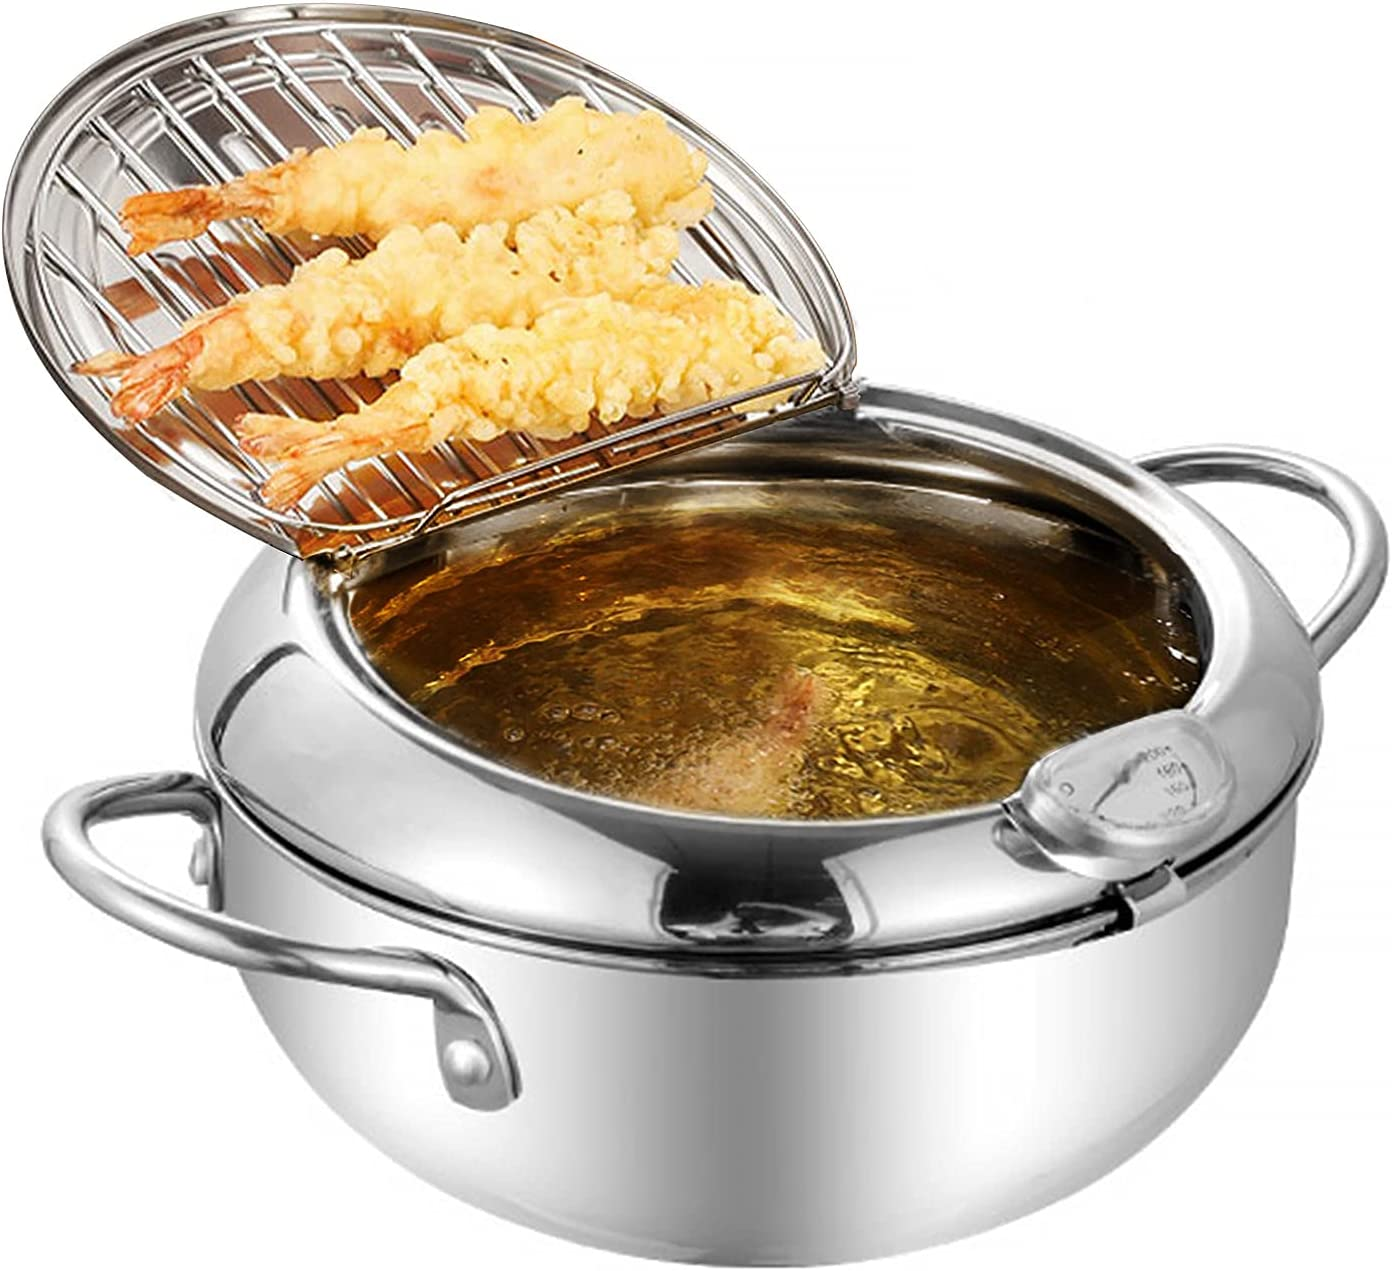 OitiO Tempura Deep Fryer Pot, 304 Stainless Steel Japanese Style Fryer Pan, with Temperature Control, Lid and Oil Filter Rack, Kitchen Cooking Frying Pot (9.4'')